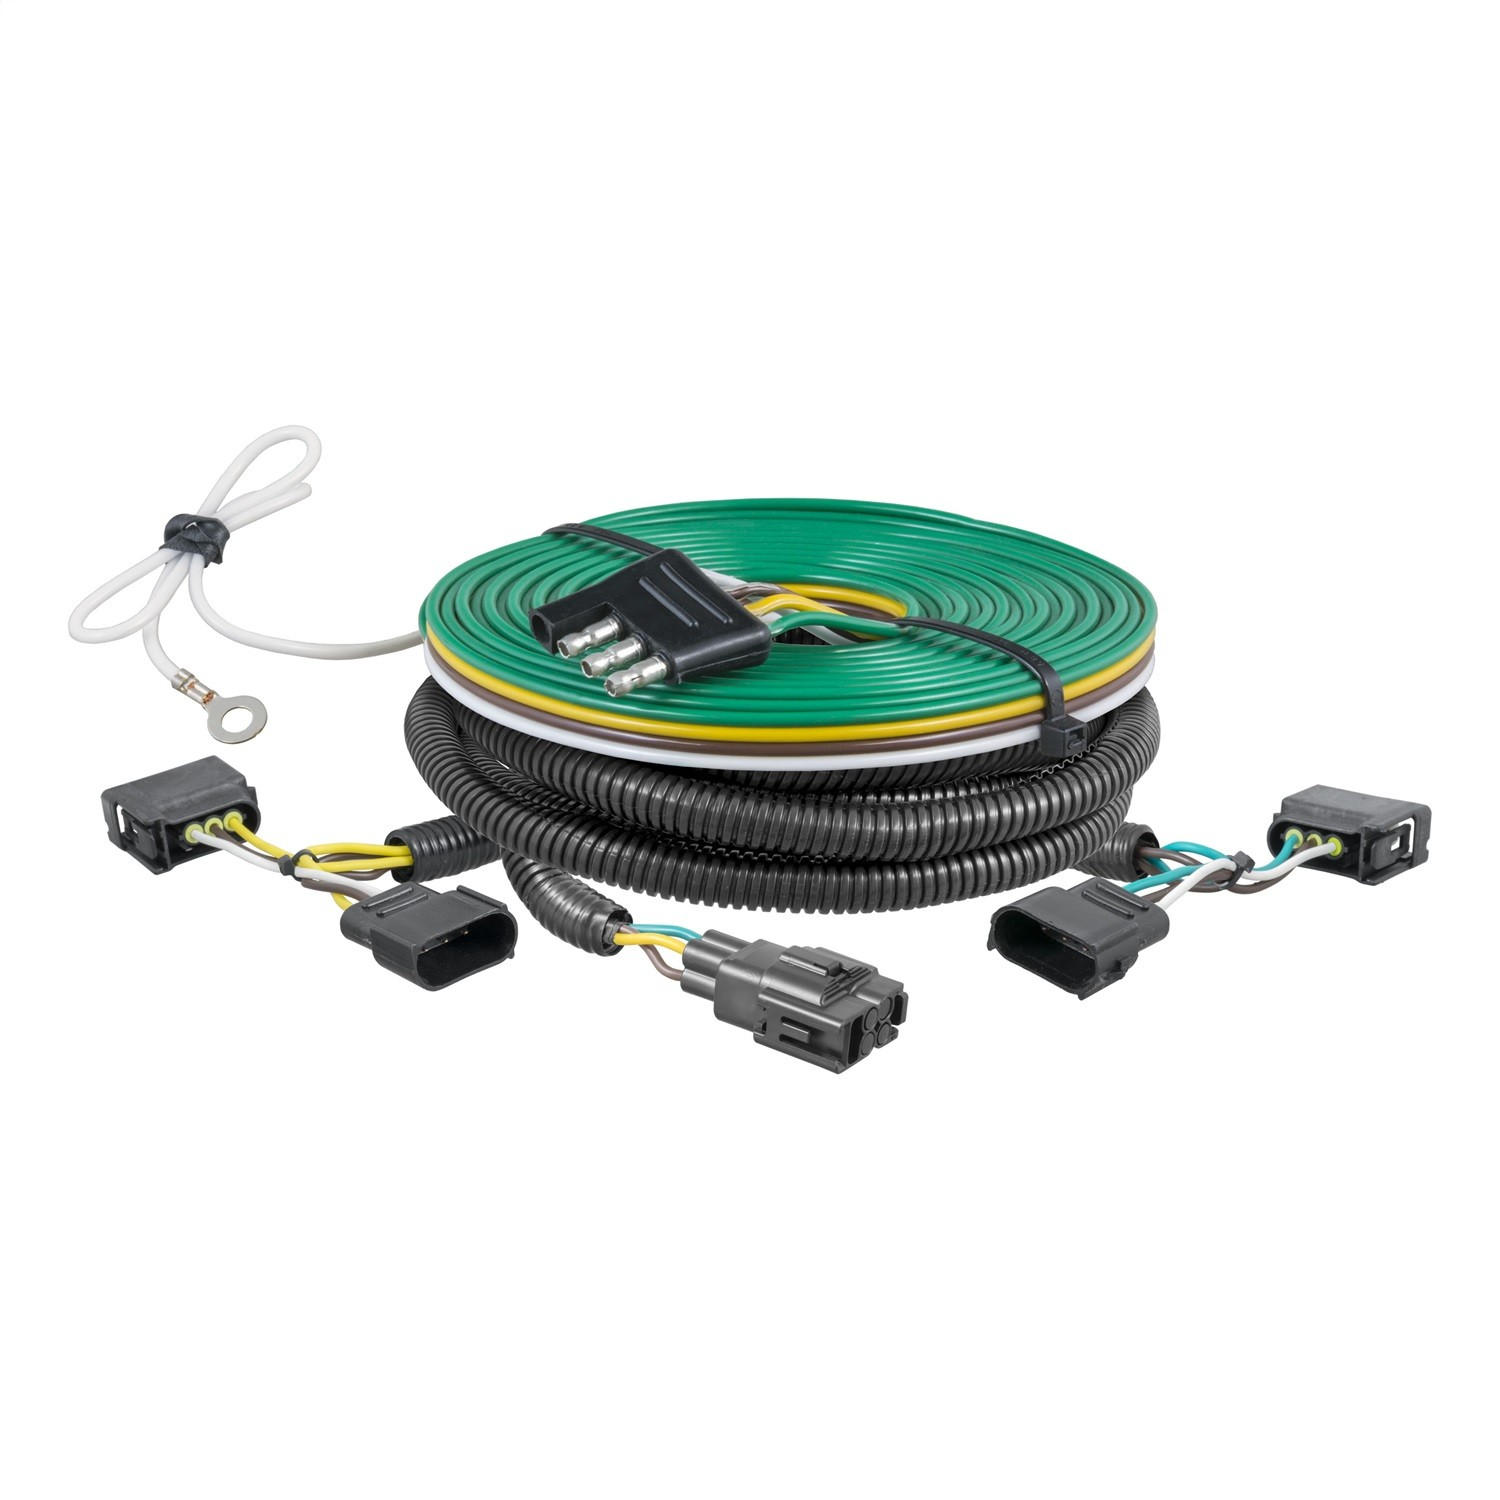 Kit de Conectores de Remolque Towed-Vehicle RV Harness para ...  Ford Escape Wiring Harness on 2003 ford expedition wiring harness, 2003 ford f-150 wiring harness, 2007 volkswagen jetta wiring harness, 1996 ford explorer wiring harness, 2003 ford explorer wiring harness, 2006 ford mustang wiring harness, 2010 toyota tundra wiring harness, 2004 ford mustang wiring harness, 2002 ford mustang wiring harness, 2000 ford explorer wiring harness, 2002 ford f350 wiring harness, 1998 ford taurus wiring harness, 2001 ford expedition wiring harness, 2004 ford expedition wiring harness, 1999 ford expedition wiring harness, 1997 ford explorer wiring harness, 2005 ford f250 wiring harness, 2005 chrysler crossfire wiring harness, 2003 ford taurus wiring harness, 2009 nissan murano wiring harness,